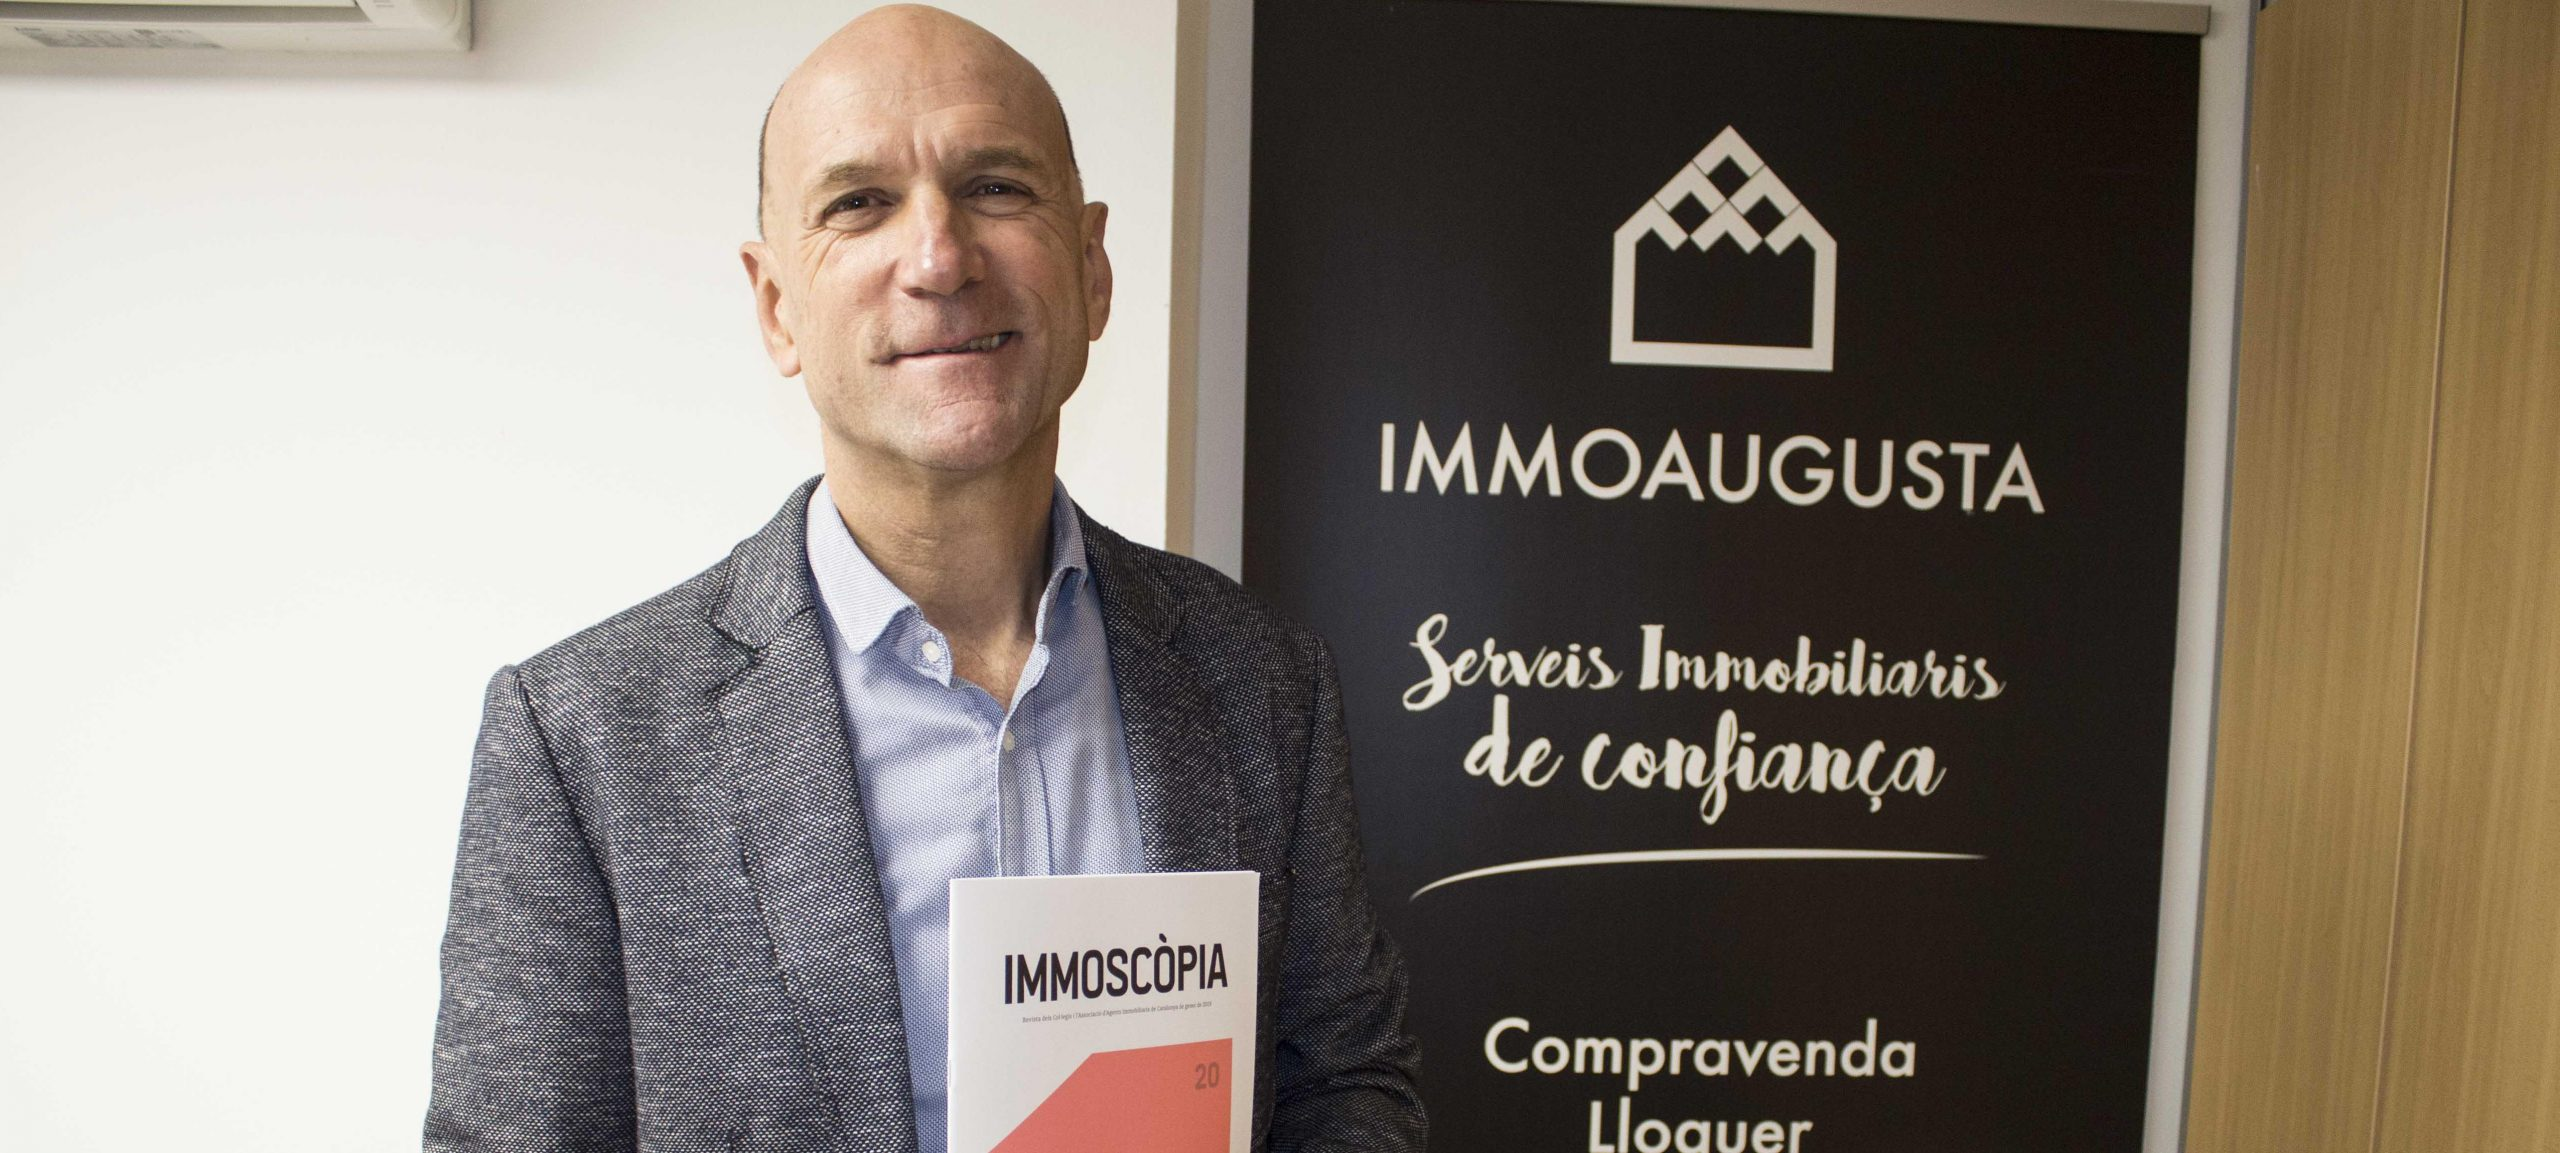 immoaugustaimmoscopiavenderpisobarcelonaimmoaugustaagenciainmobiliariavscaled